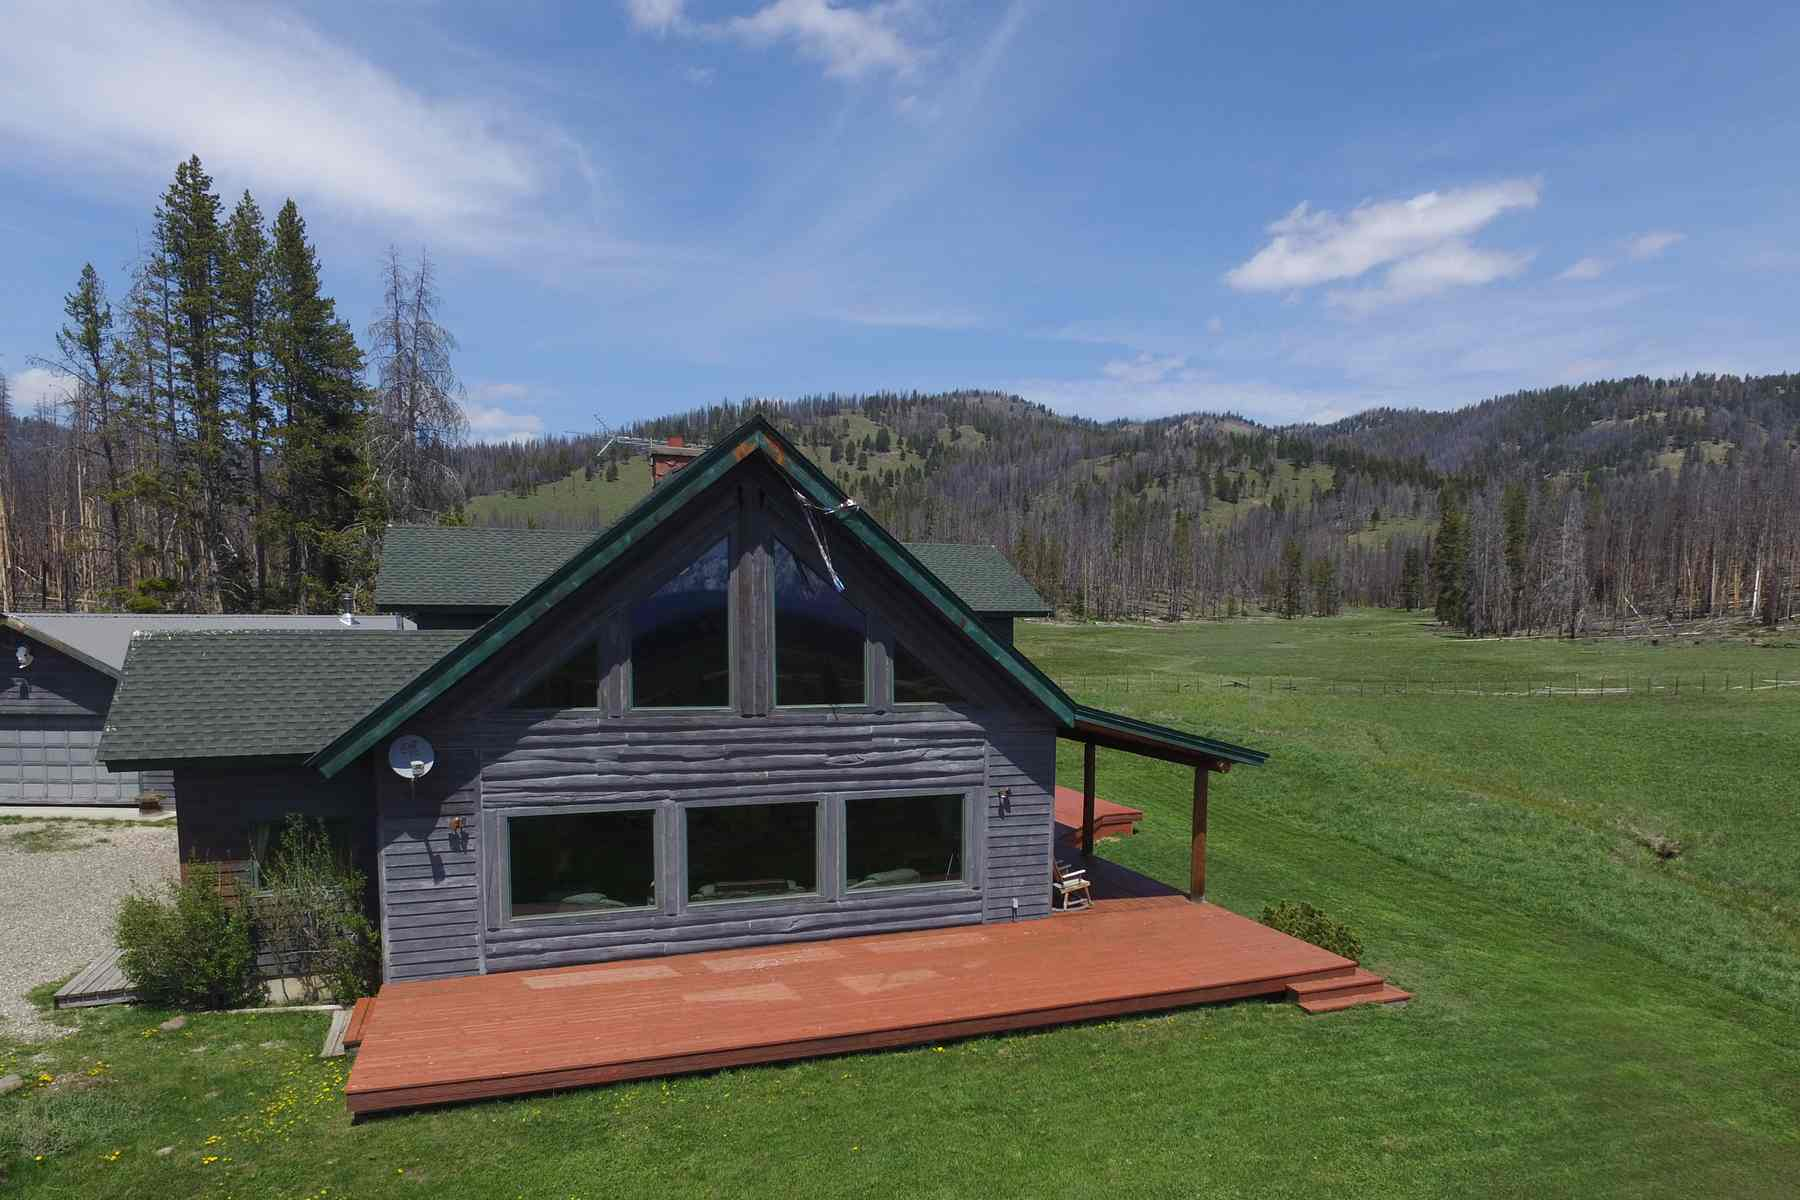 Terreno por un Venta en Sawtooth Mountain Retreat 2435 Cow Camp Road Stanley, Idaho 83278 Estados Unidos